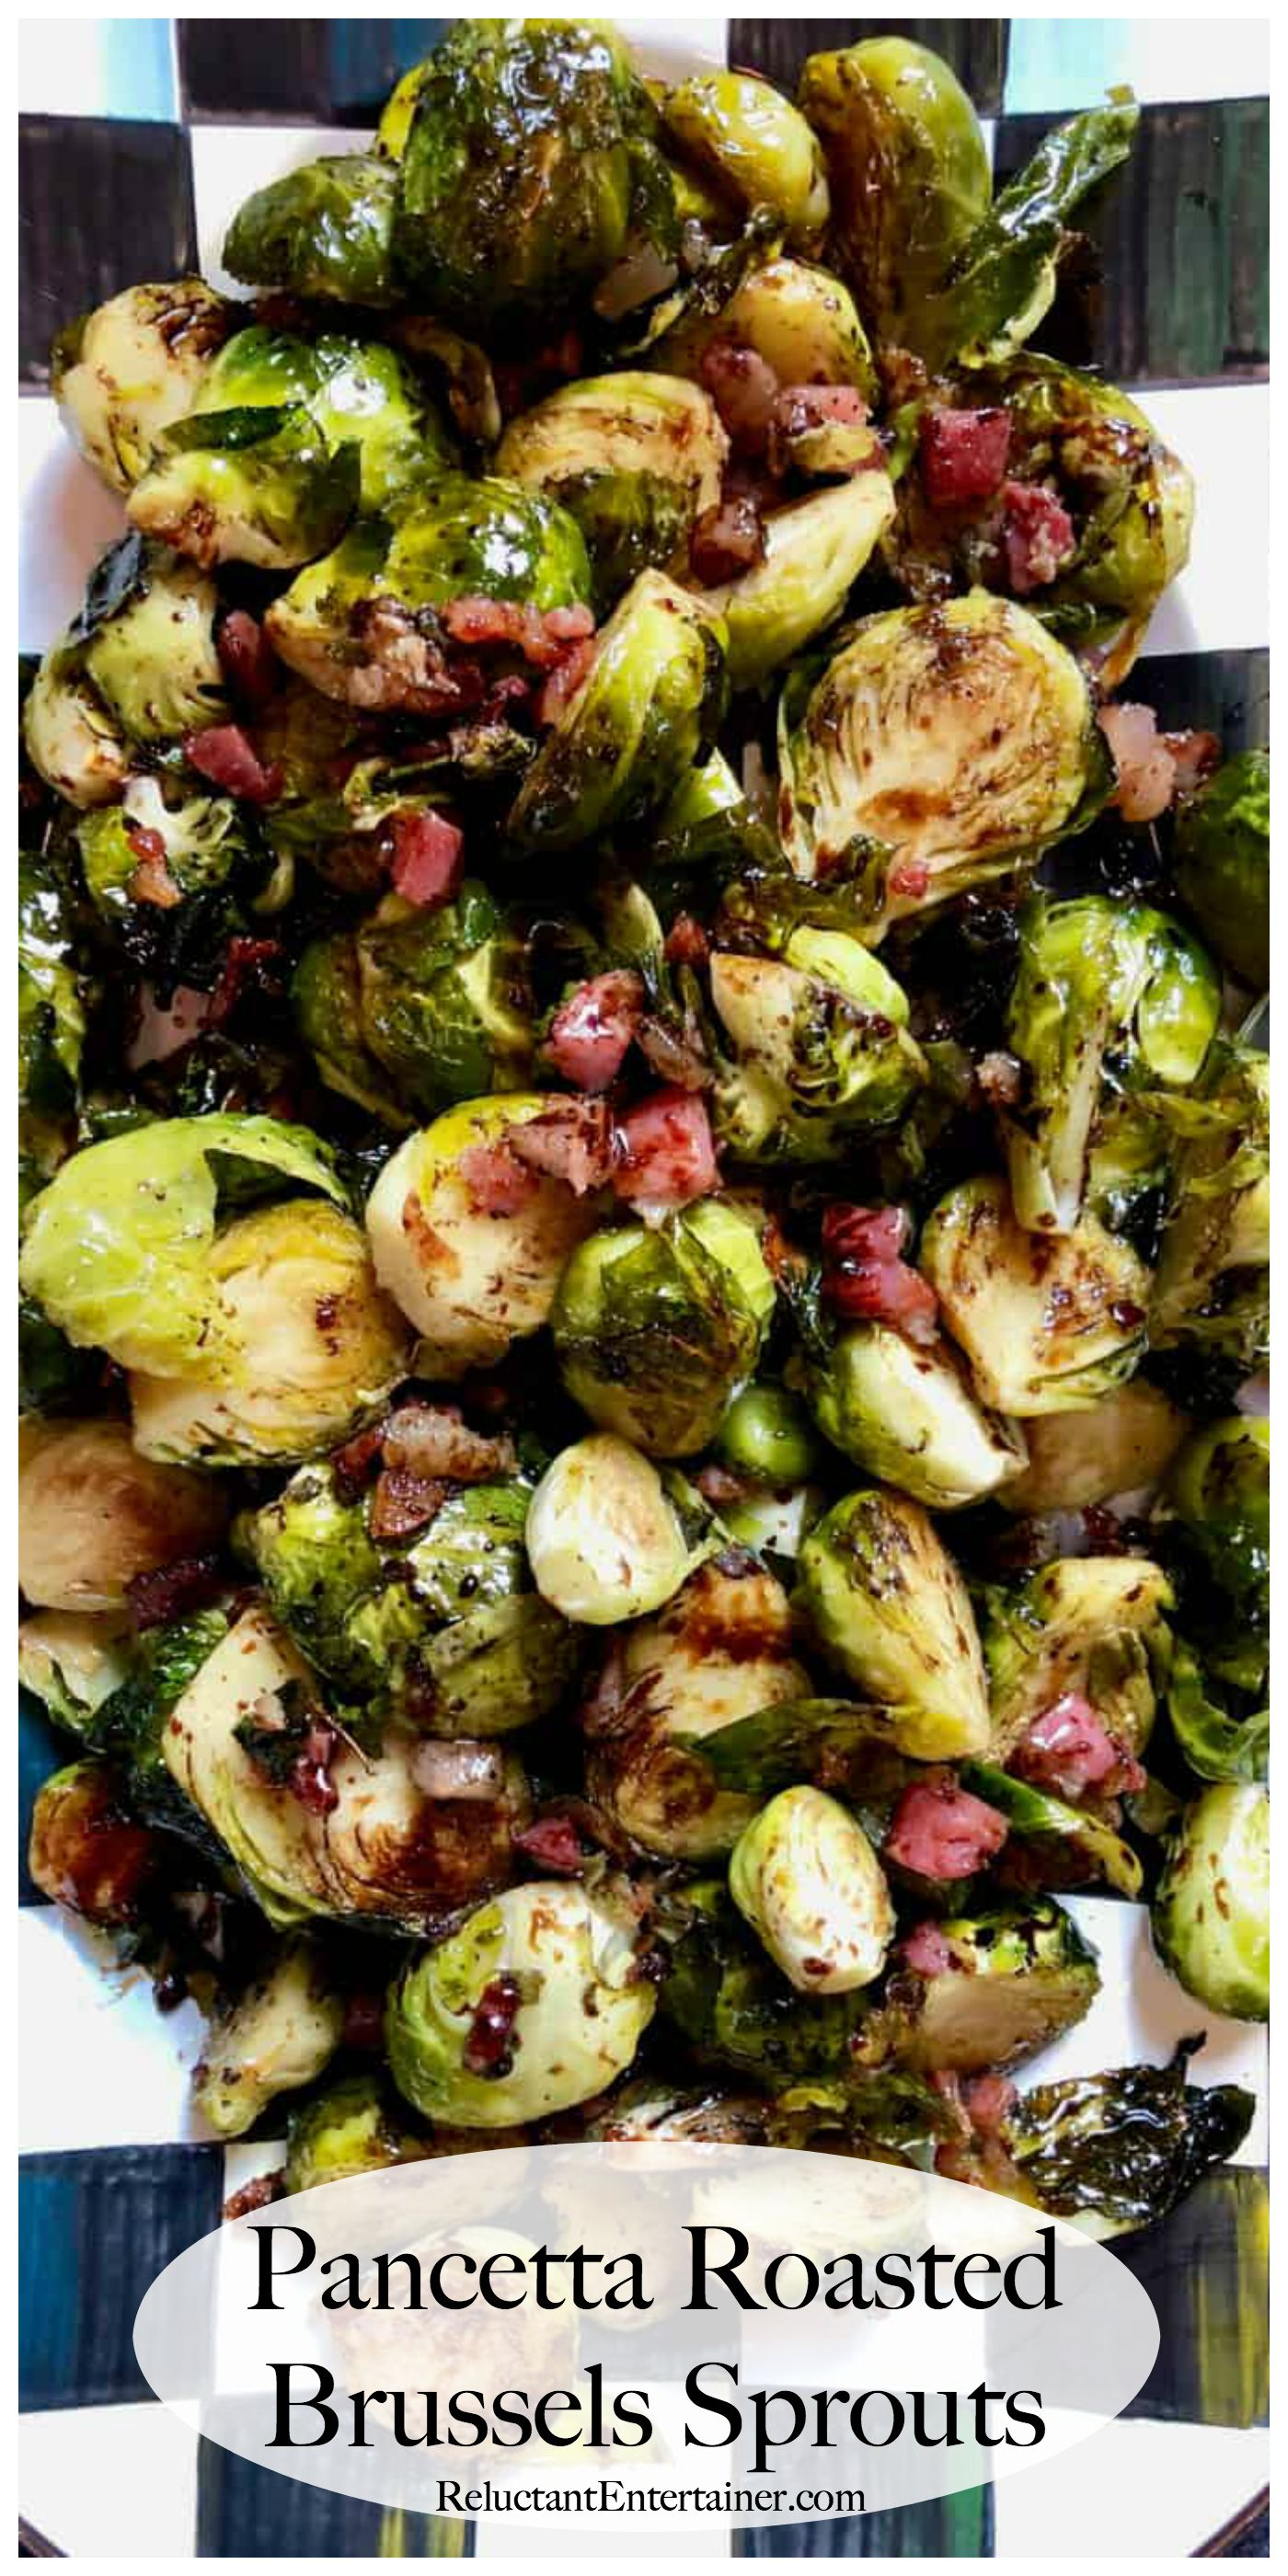 Pancetta Roasted Brussels Sprouts Are A Delicious And Healthy Side